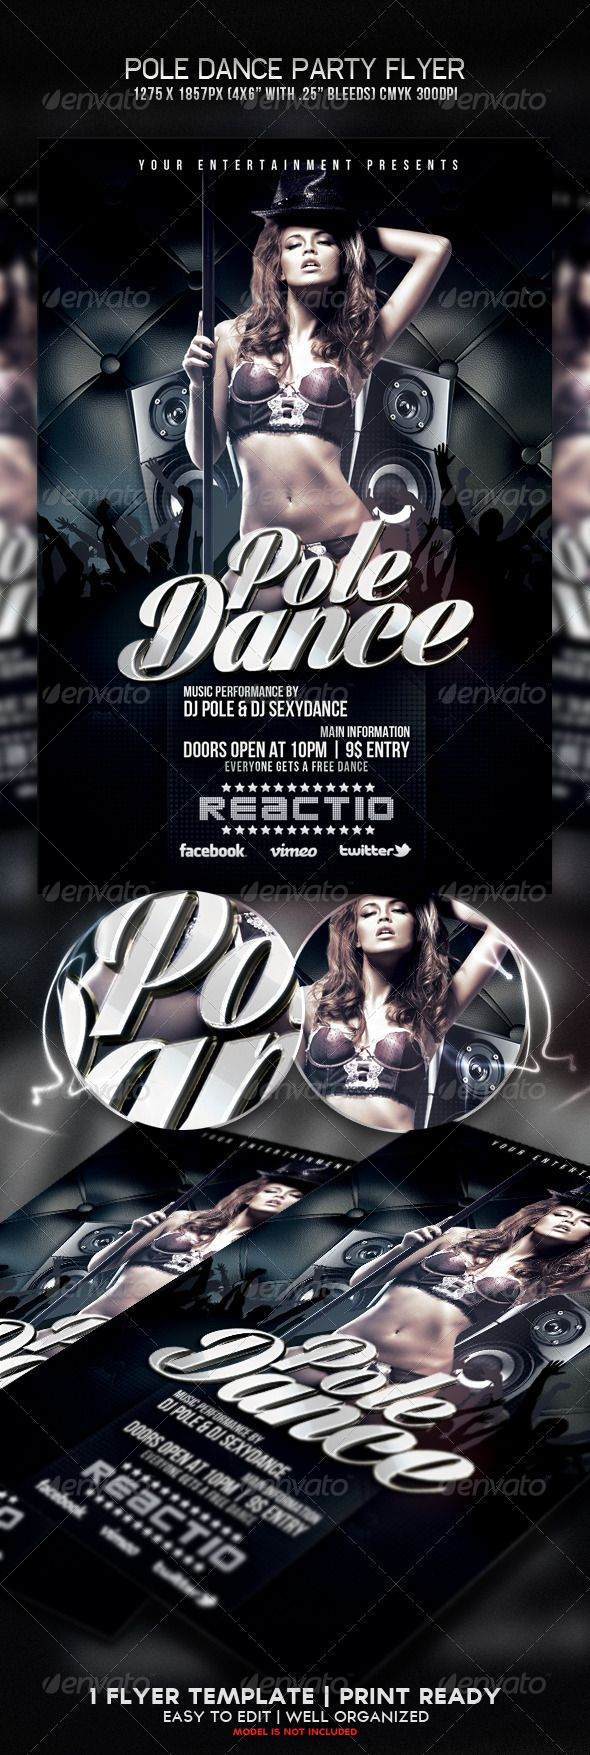 Pole Dance Party Flyer  Party Flyer Pole Dancing And Flyer Template